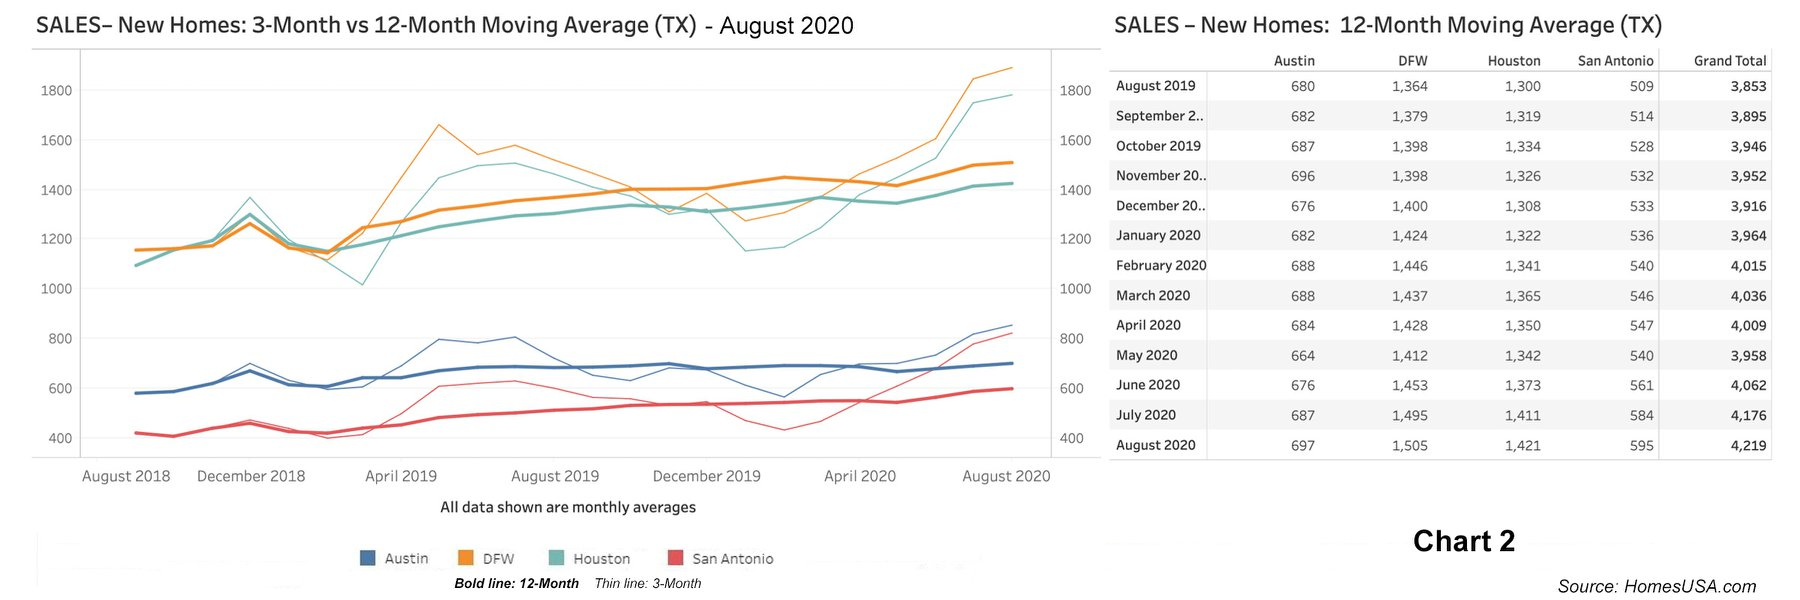 graph of new home sales